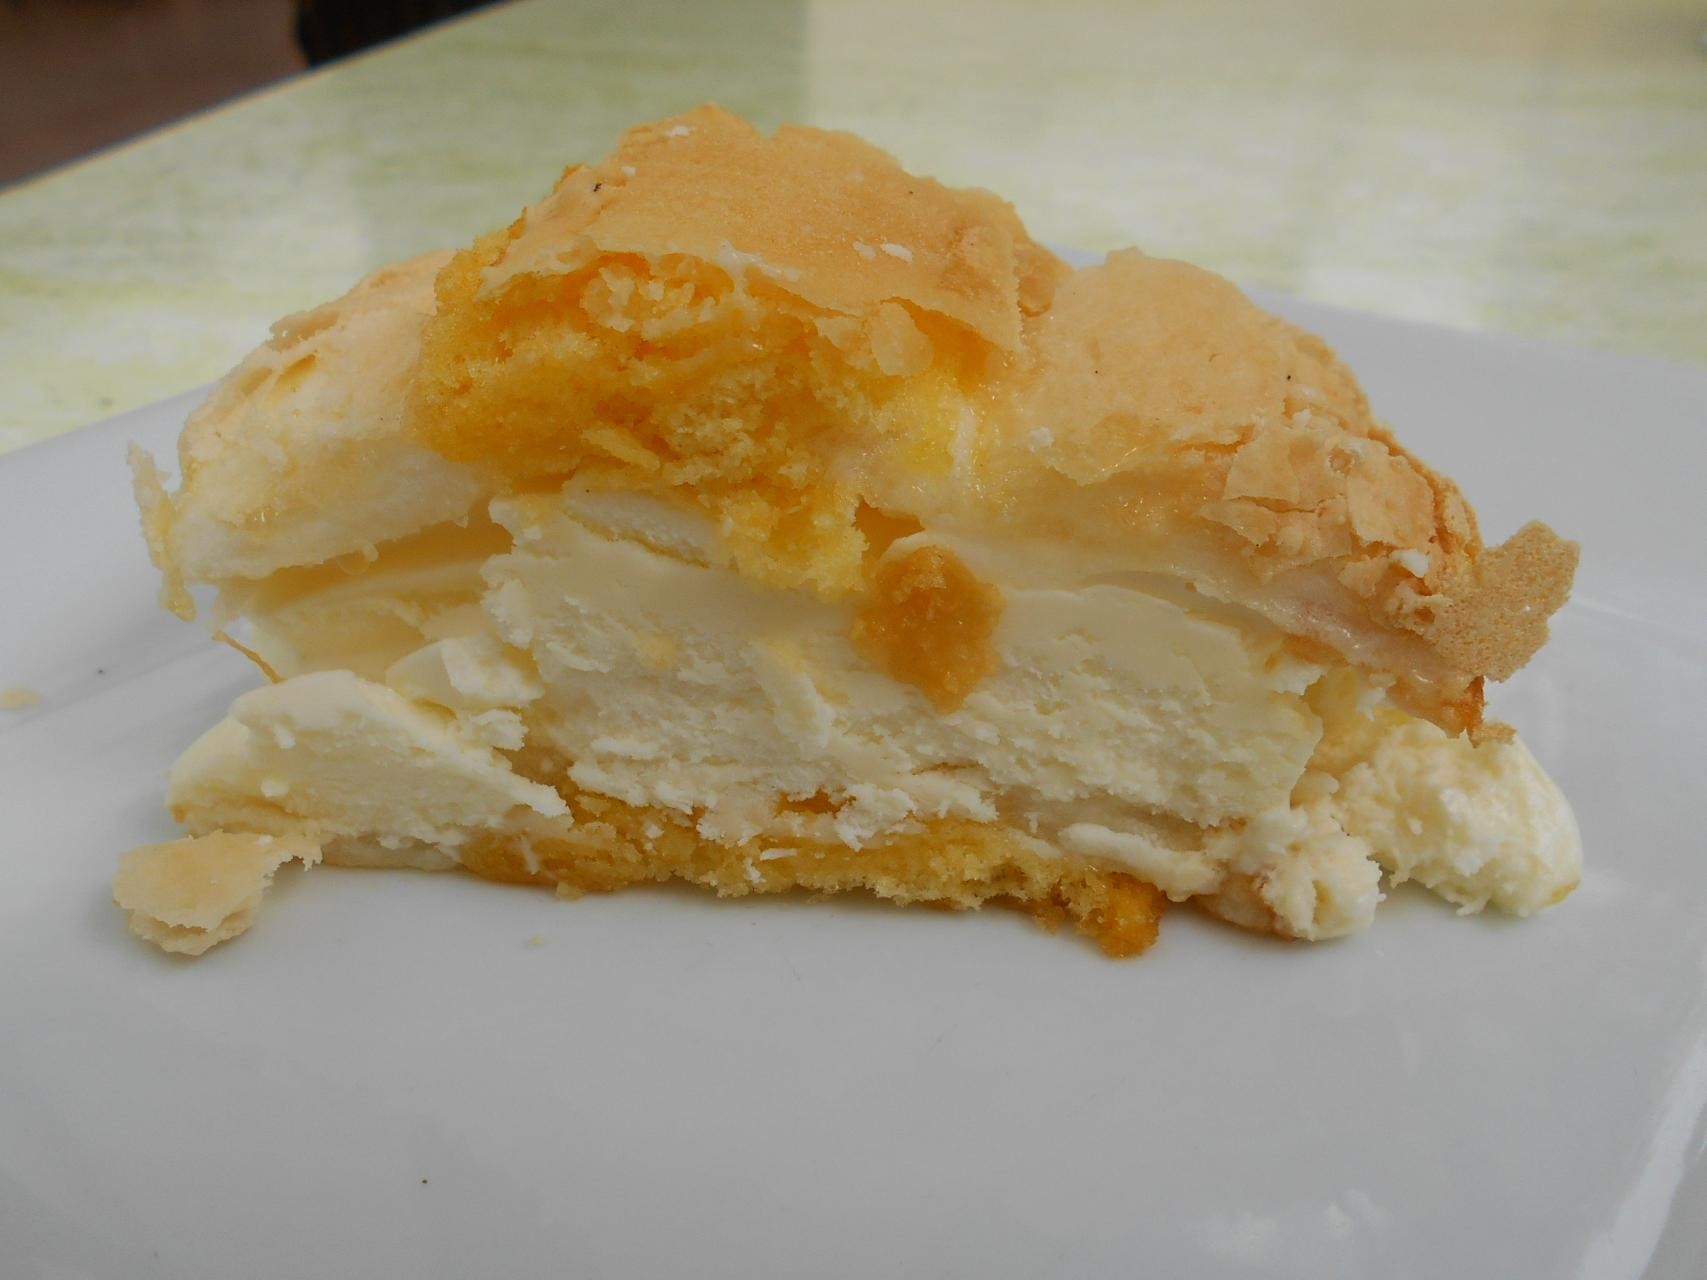 The cardenal made with soft meringue